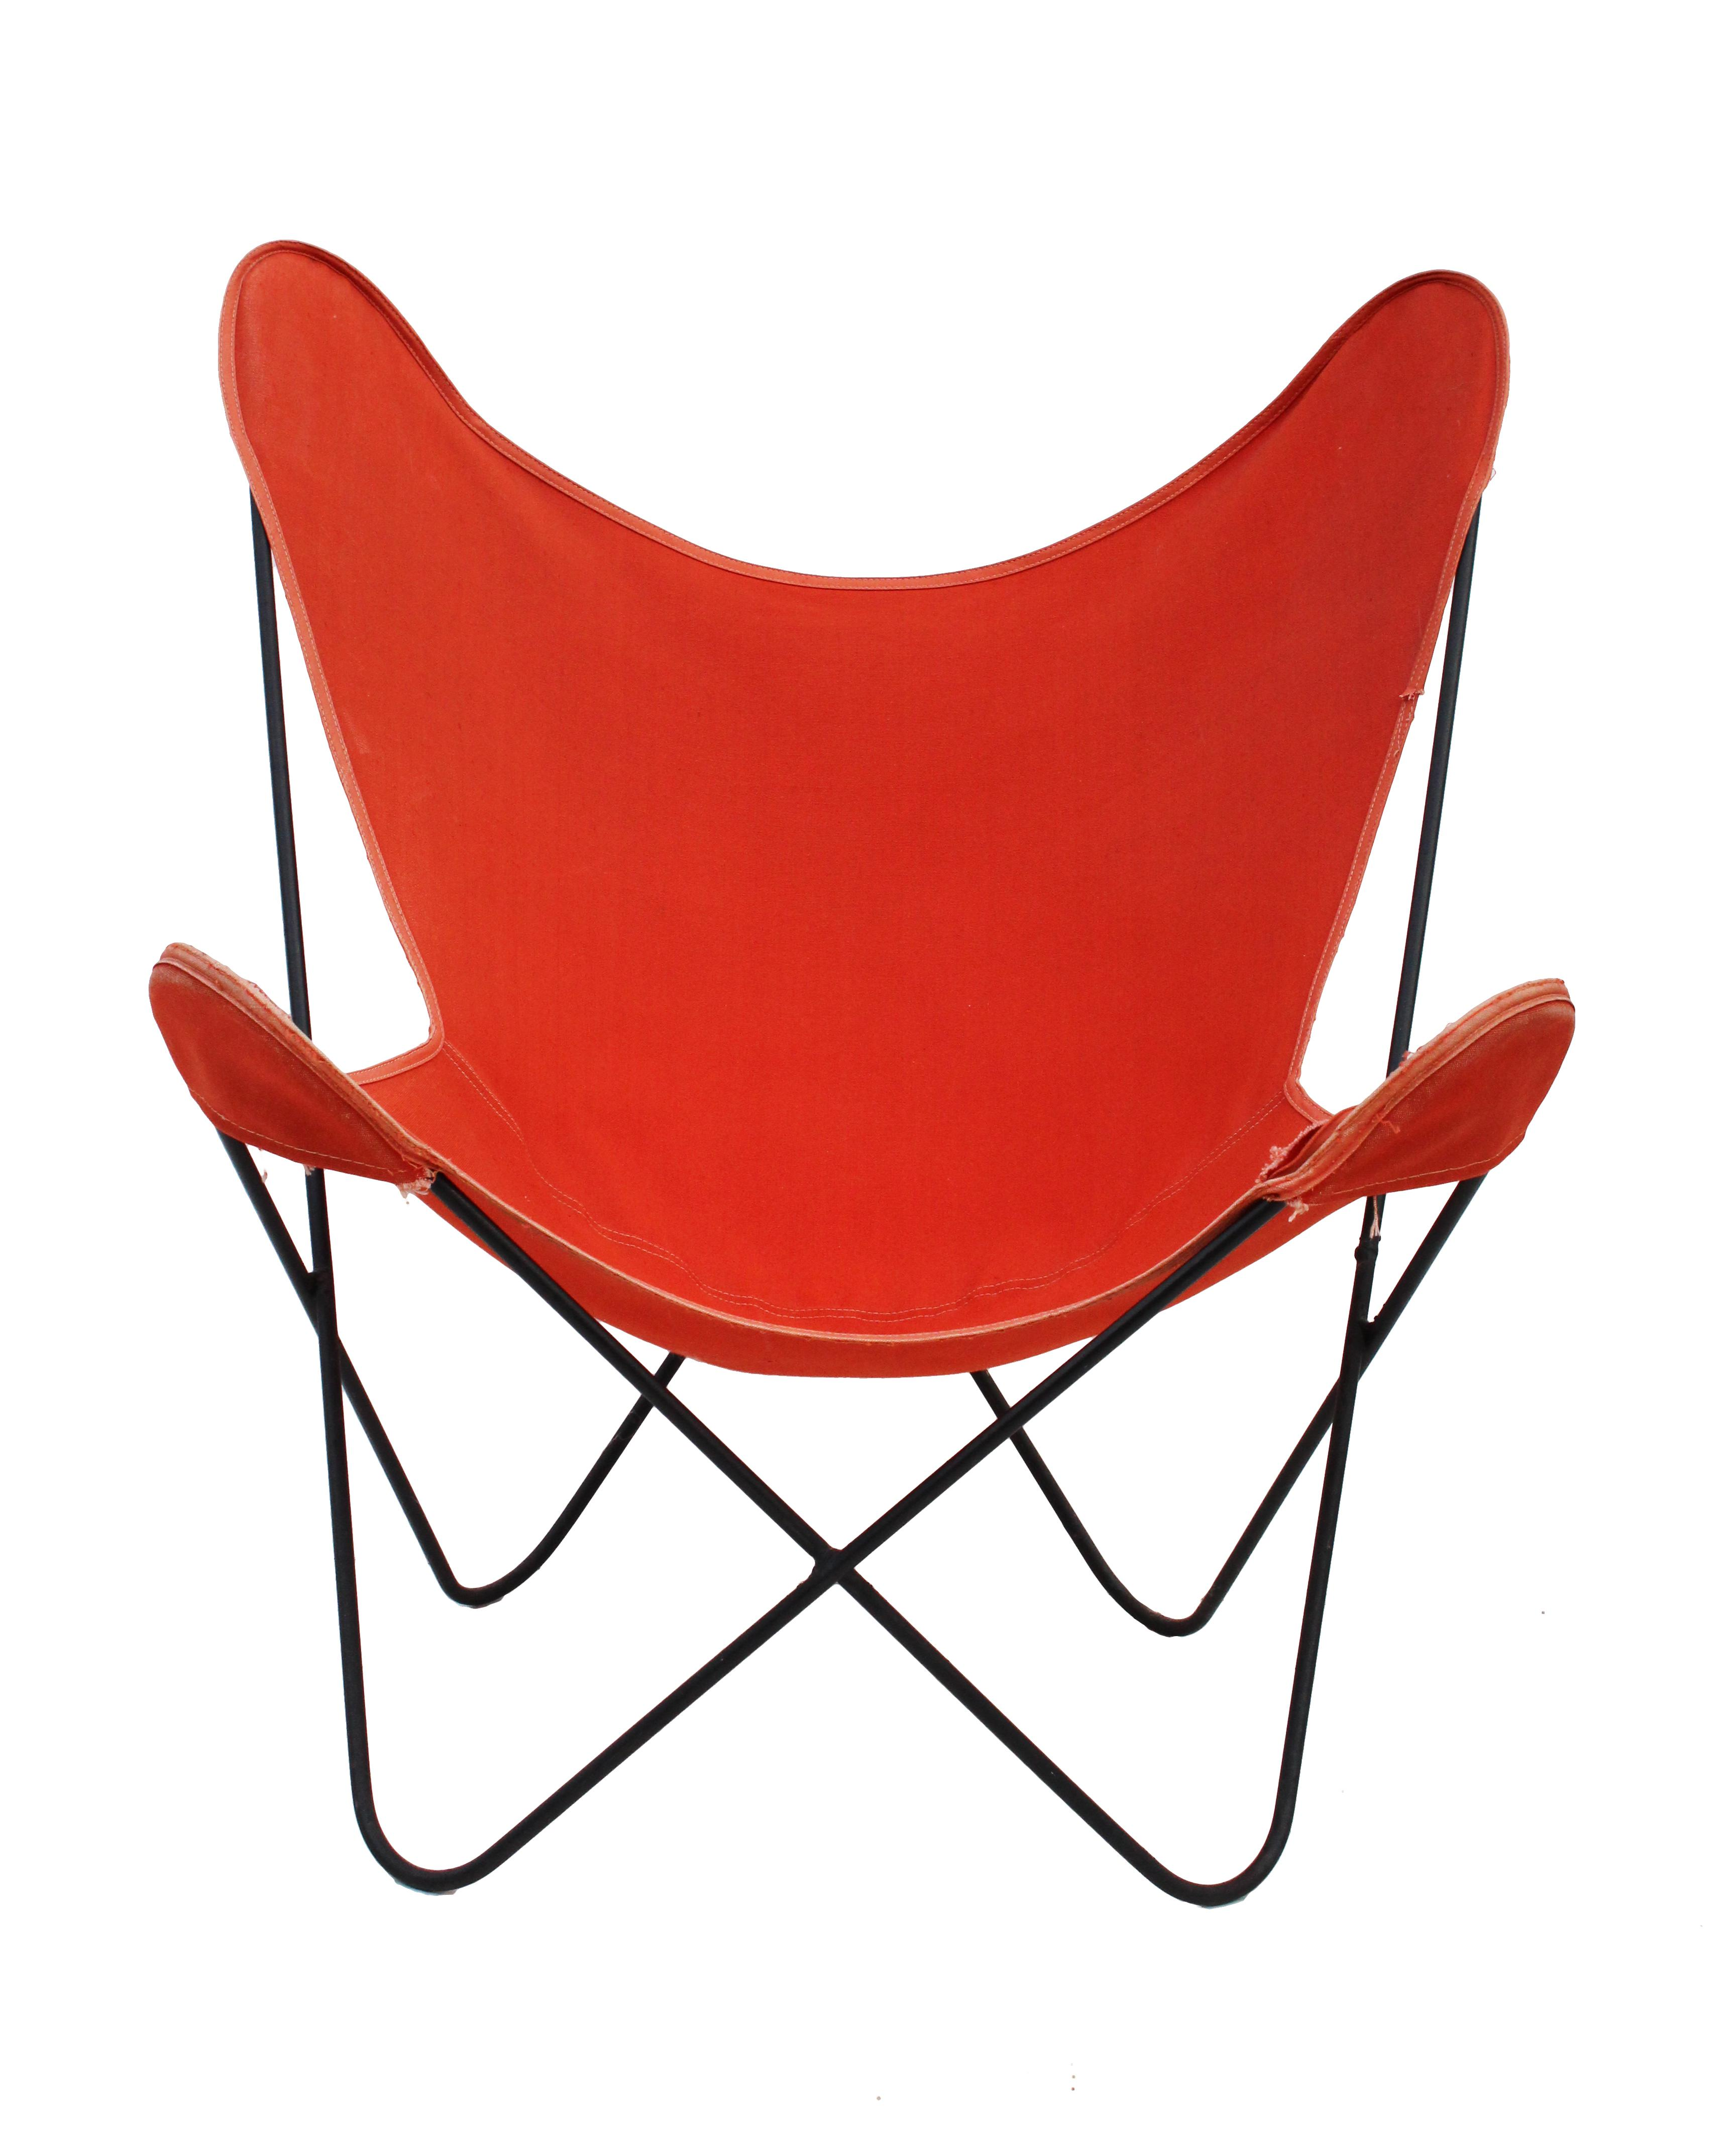 Butterfly Chair In Red Orange Canvas   Image 4 Of 10